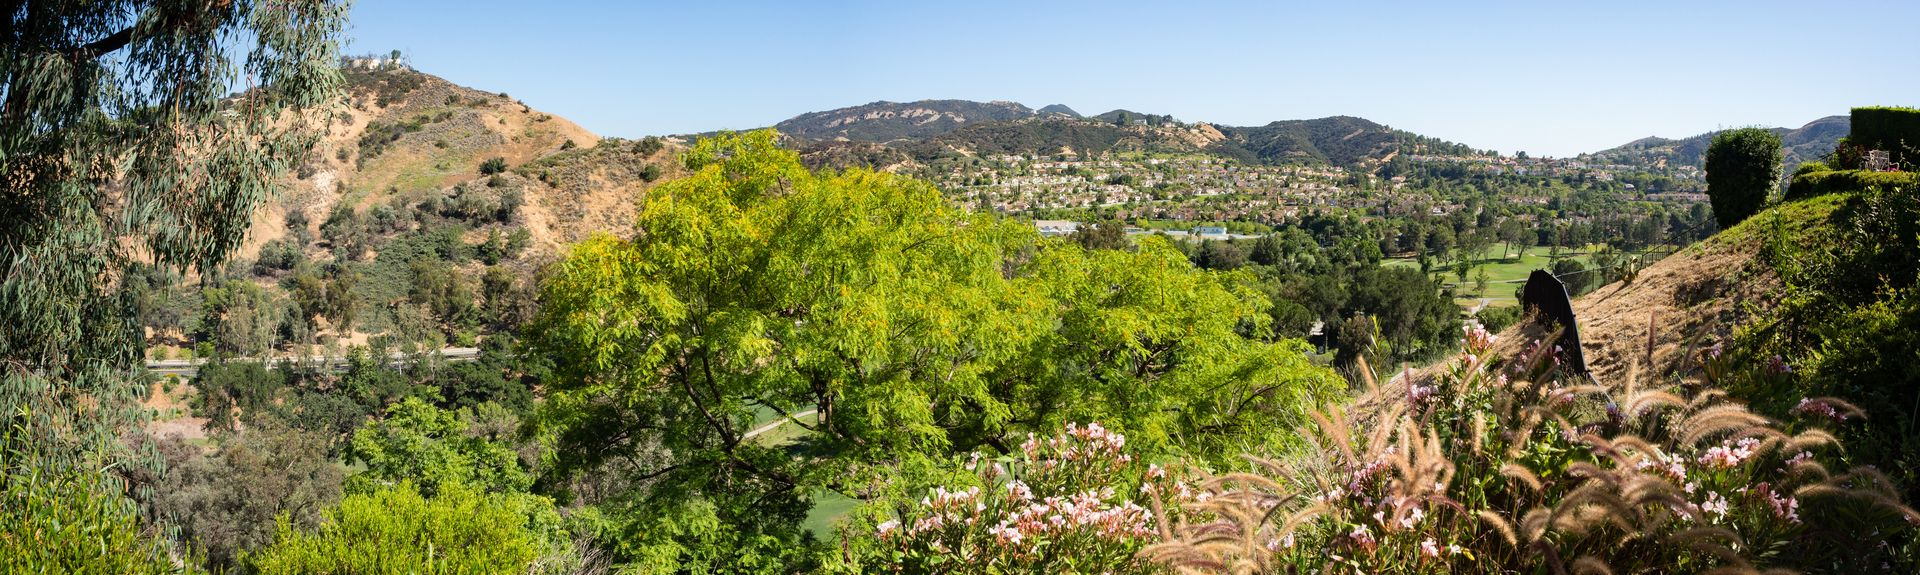 Calabasas, Californien, USA